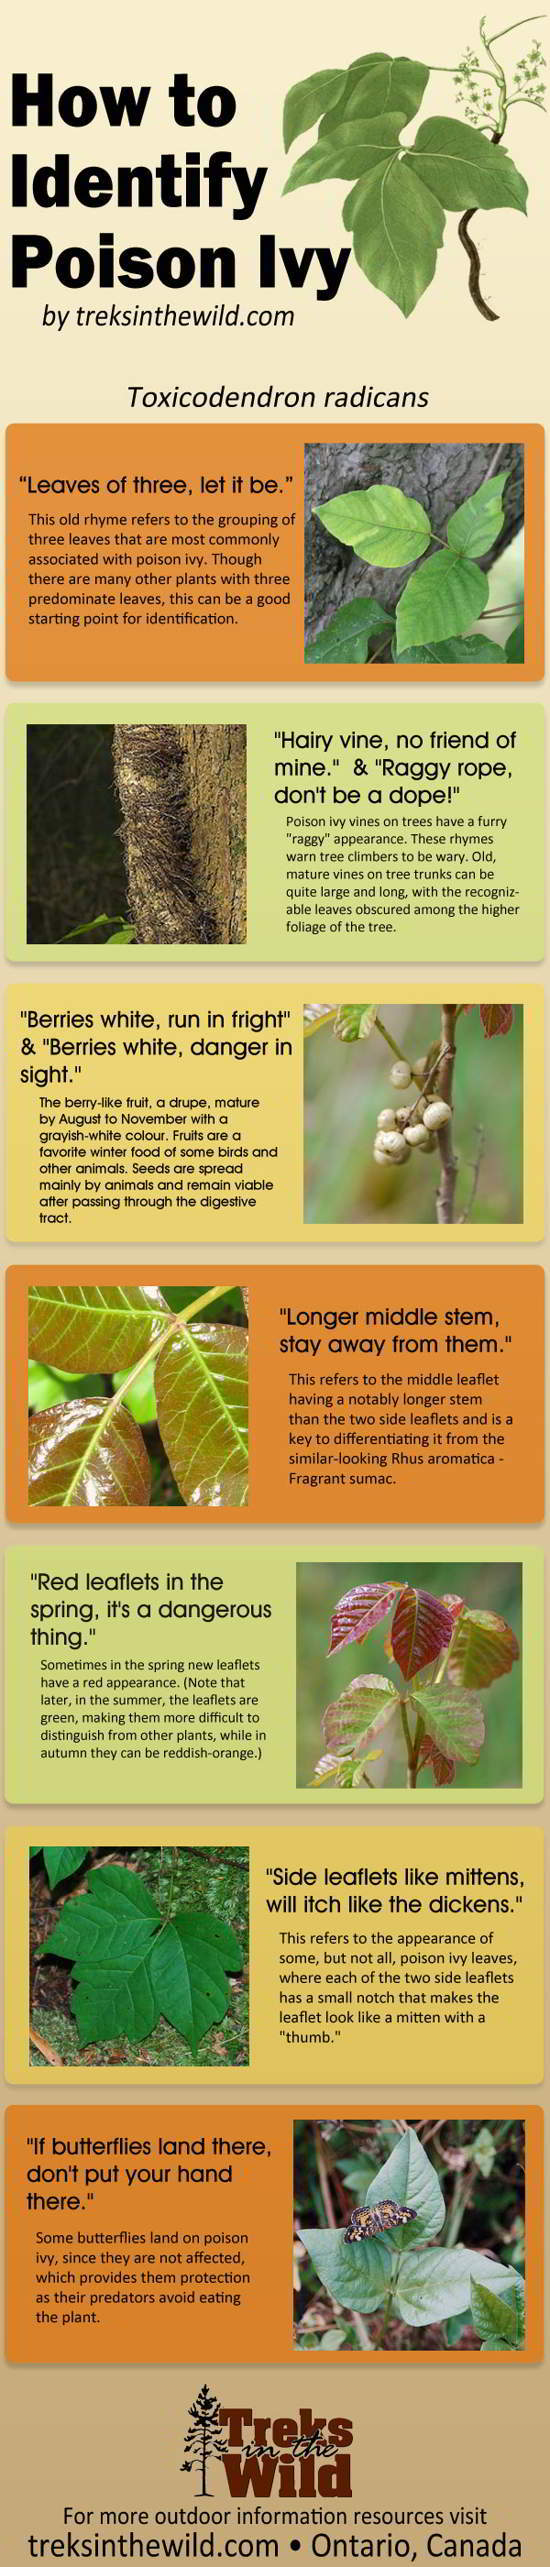 01 How to Identify Poison Ivy [infographic]